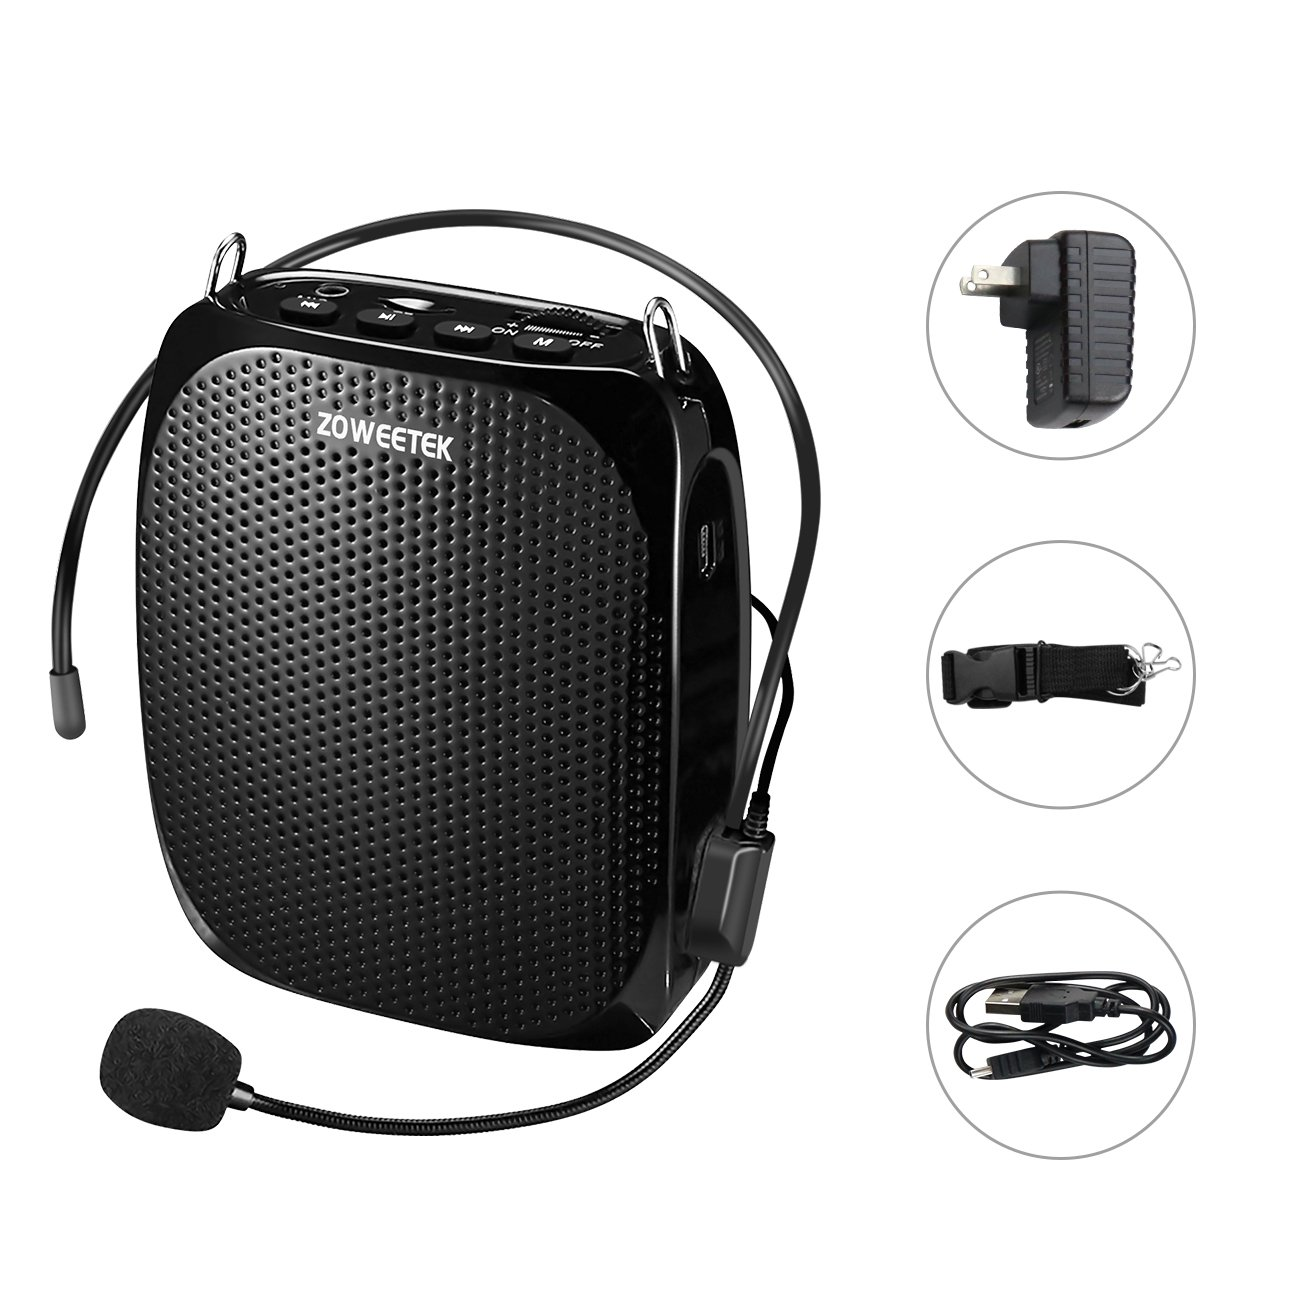 Zoweetek Portable Rechargeable Mini Voice Amplifier With Wired Microphone Headset and Waistband, Supports MP3 Format Audio for Teachers, Singing, Coaches, Training, Presentation, Tour Guide AUS-ZW-Z258